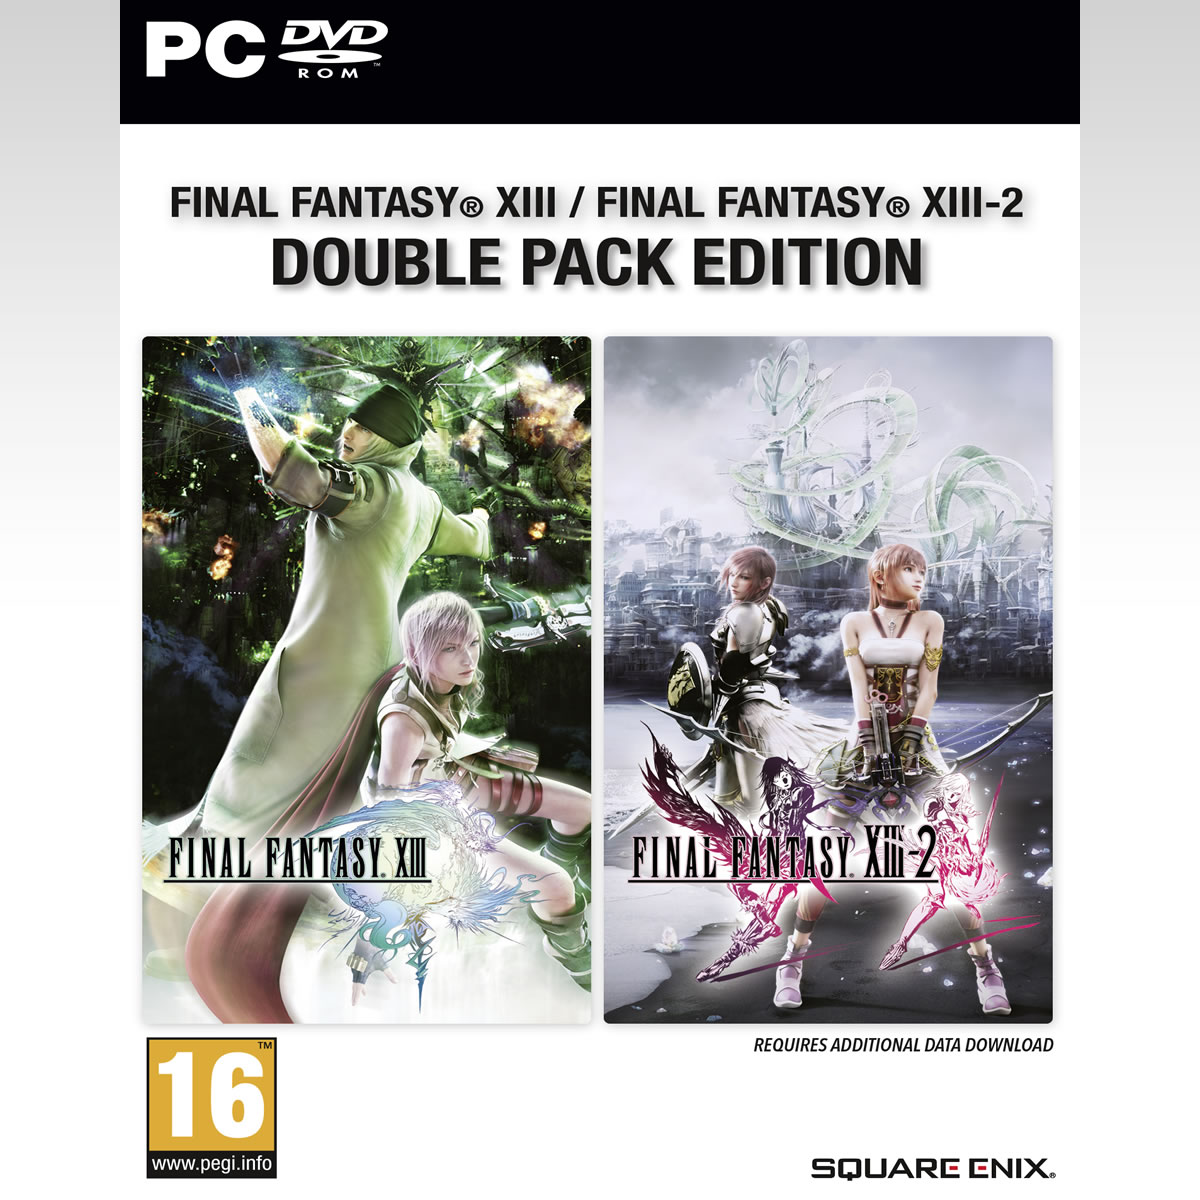 FINAL FANTASY XIII / FINAL FANTASY XIII-2 DOUBLE PACK EDITION (PC)